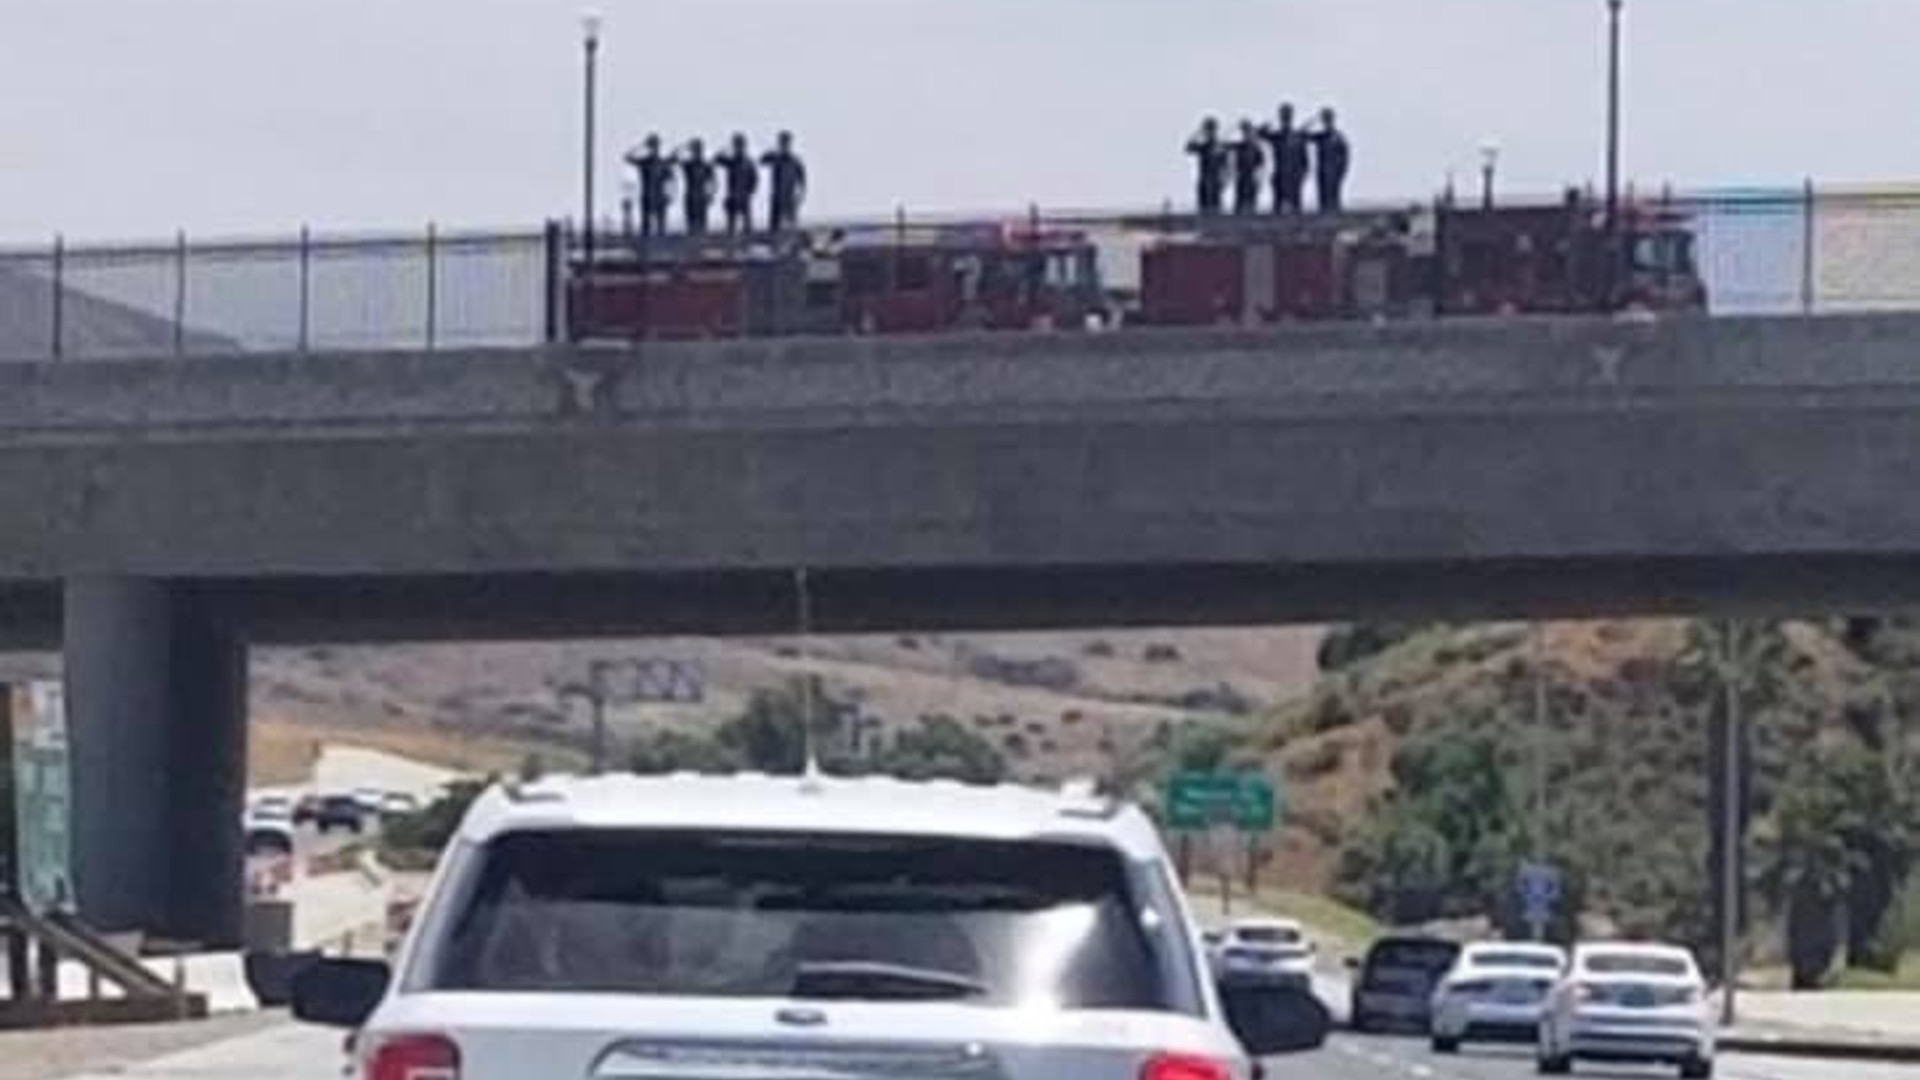 An image of fire department personnel saluting during a procession was posted on the CACorrections Facebook page.